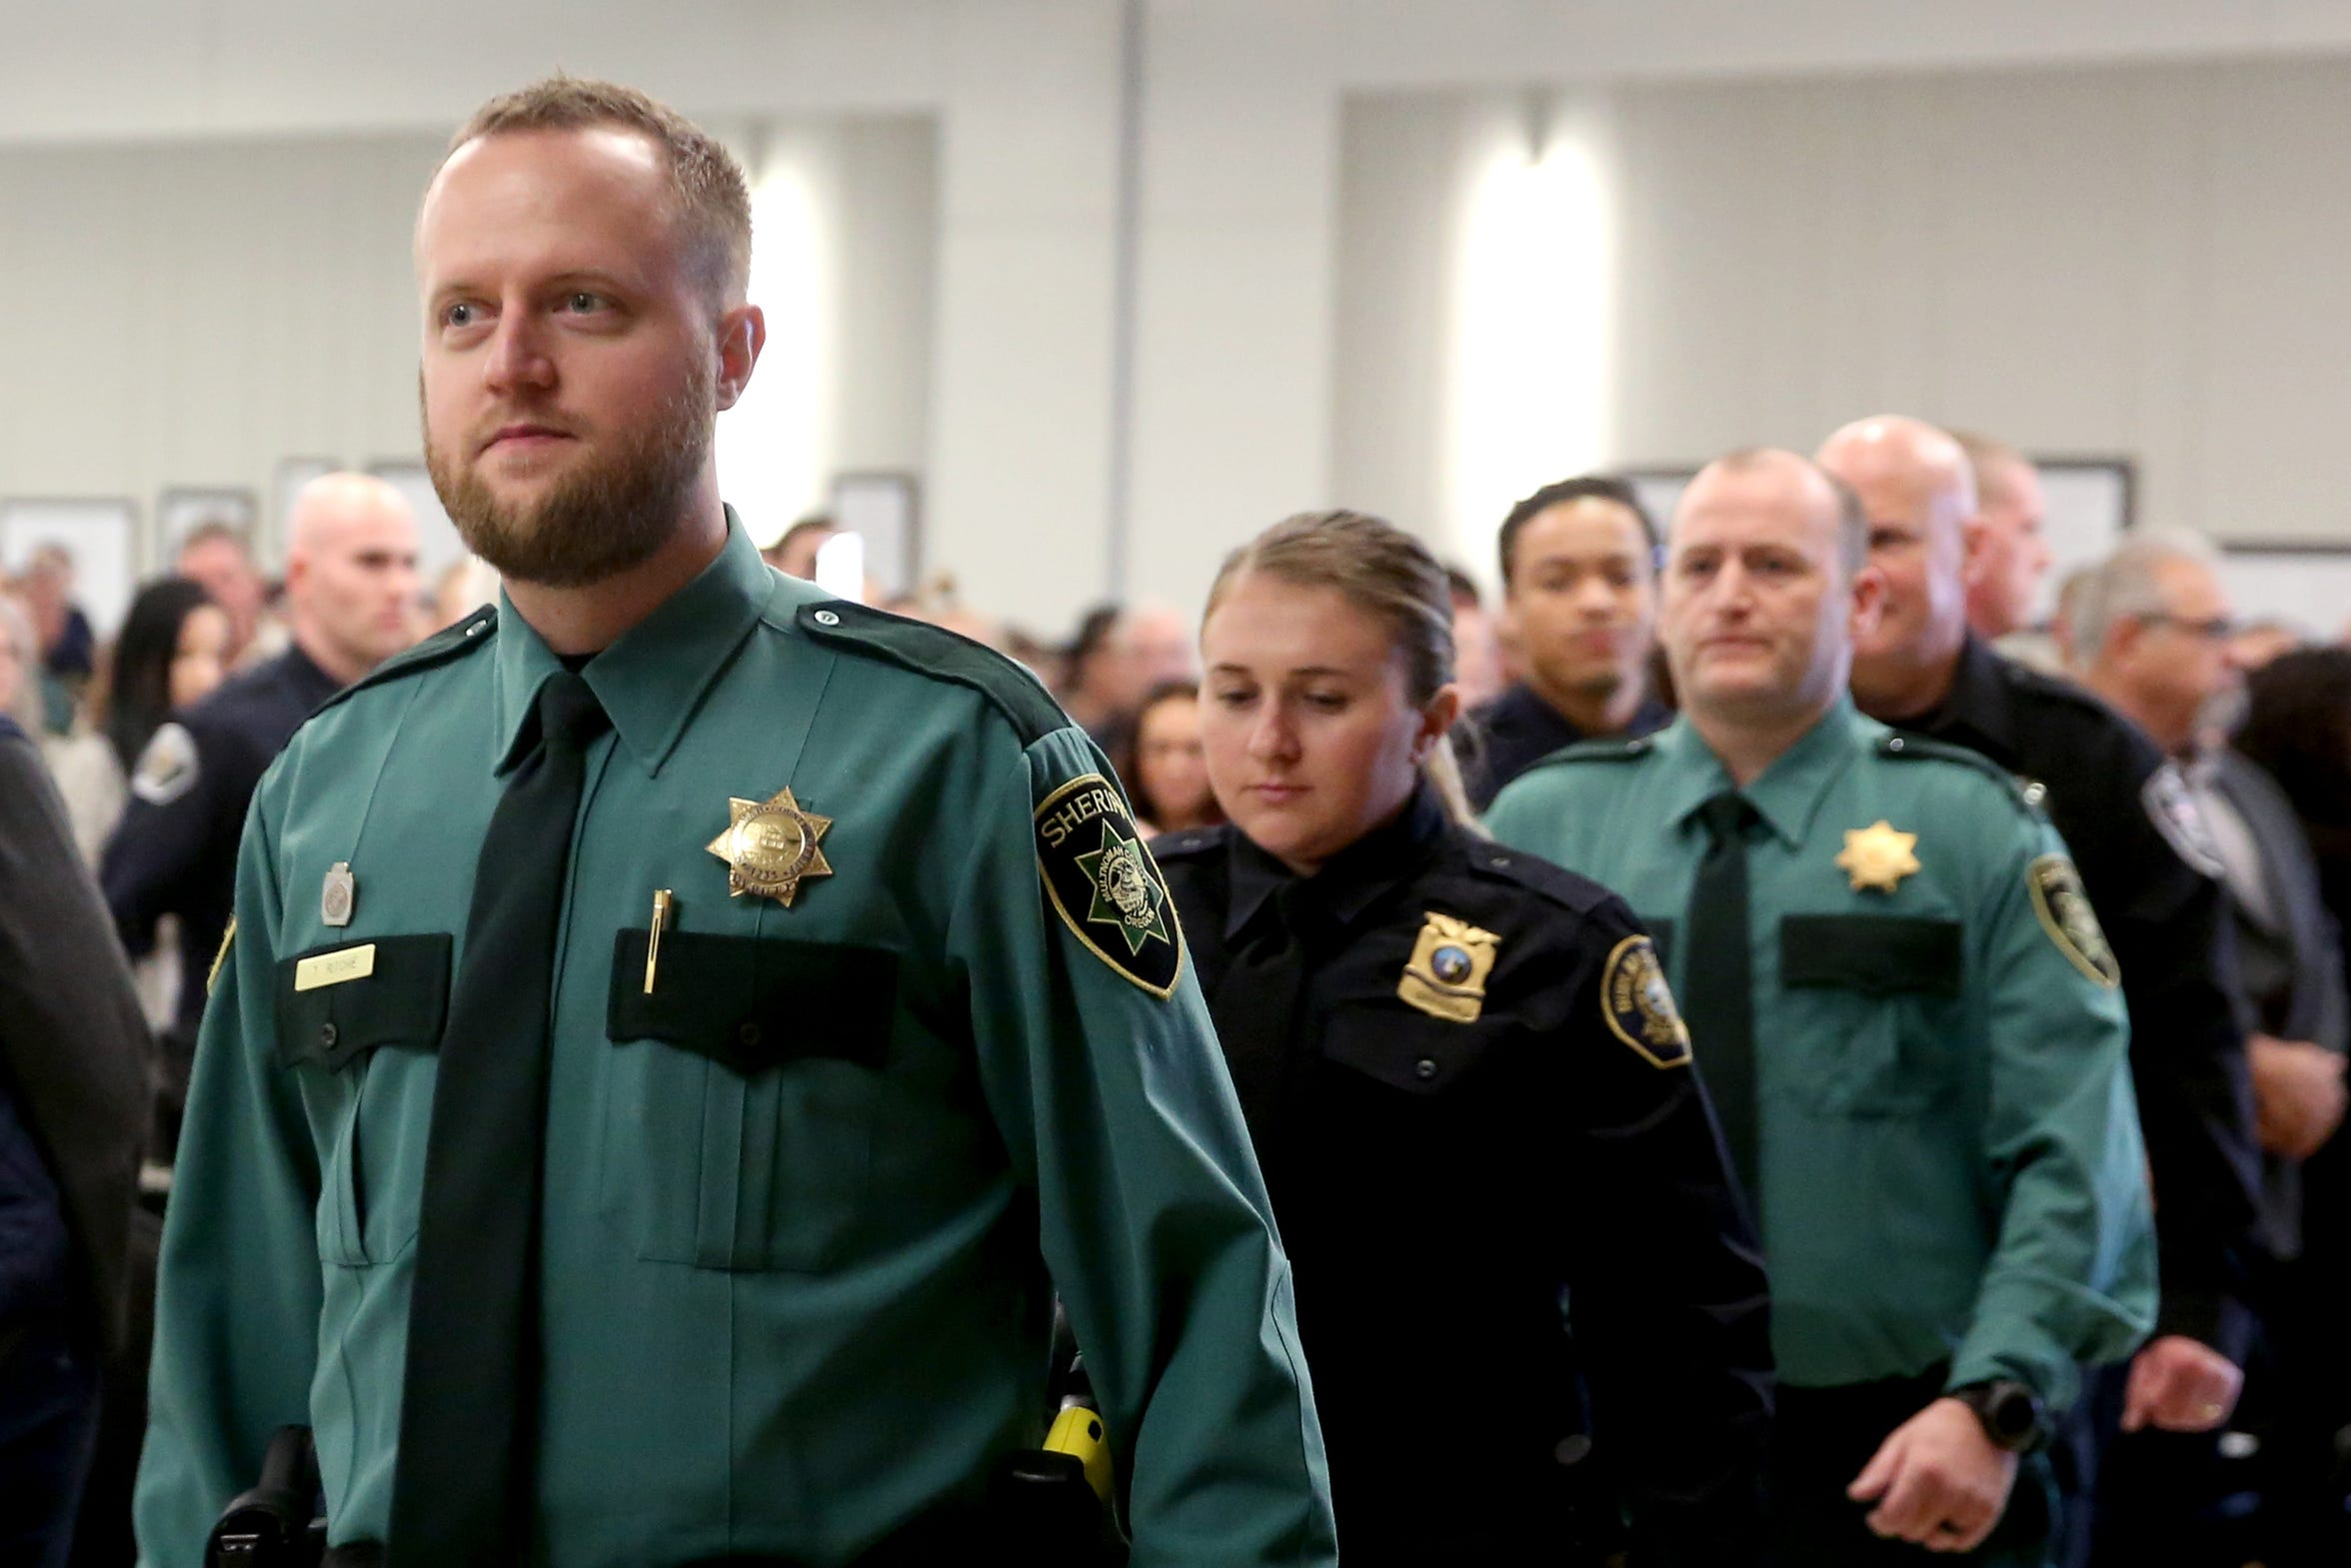 Graduates take to the stage for a Basic Police Class graduation ceremony at the Department of Public Safety Standards and Training in Salem on March 15. New recruits are being taught how to recognize and cope with stress on the job before they put on their badge and uniform.